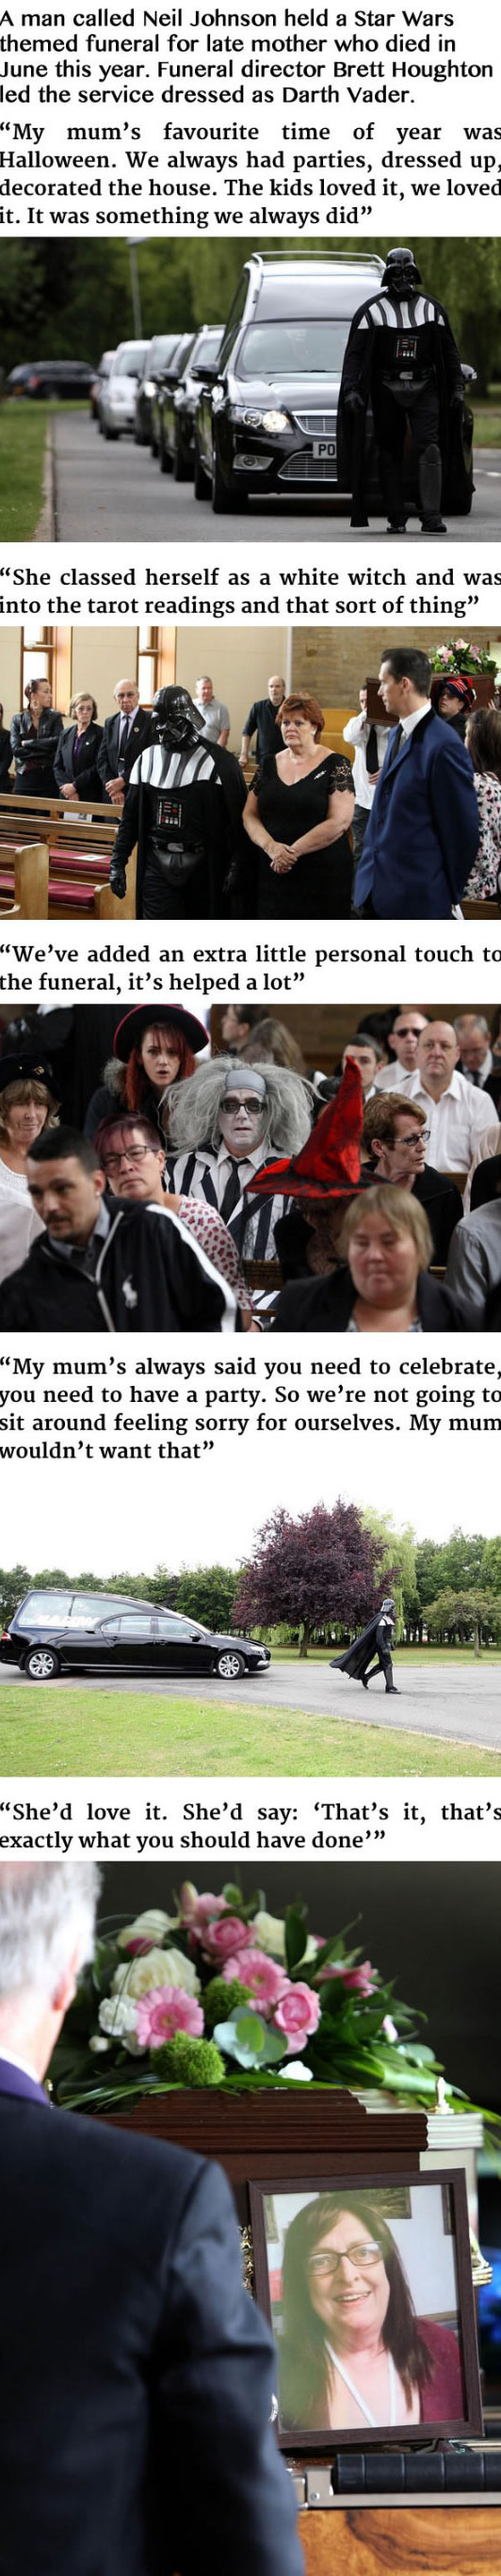 funny-star-wars-themed-funeral